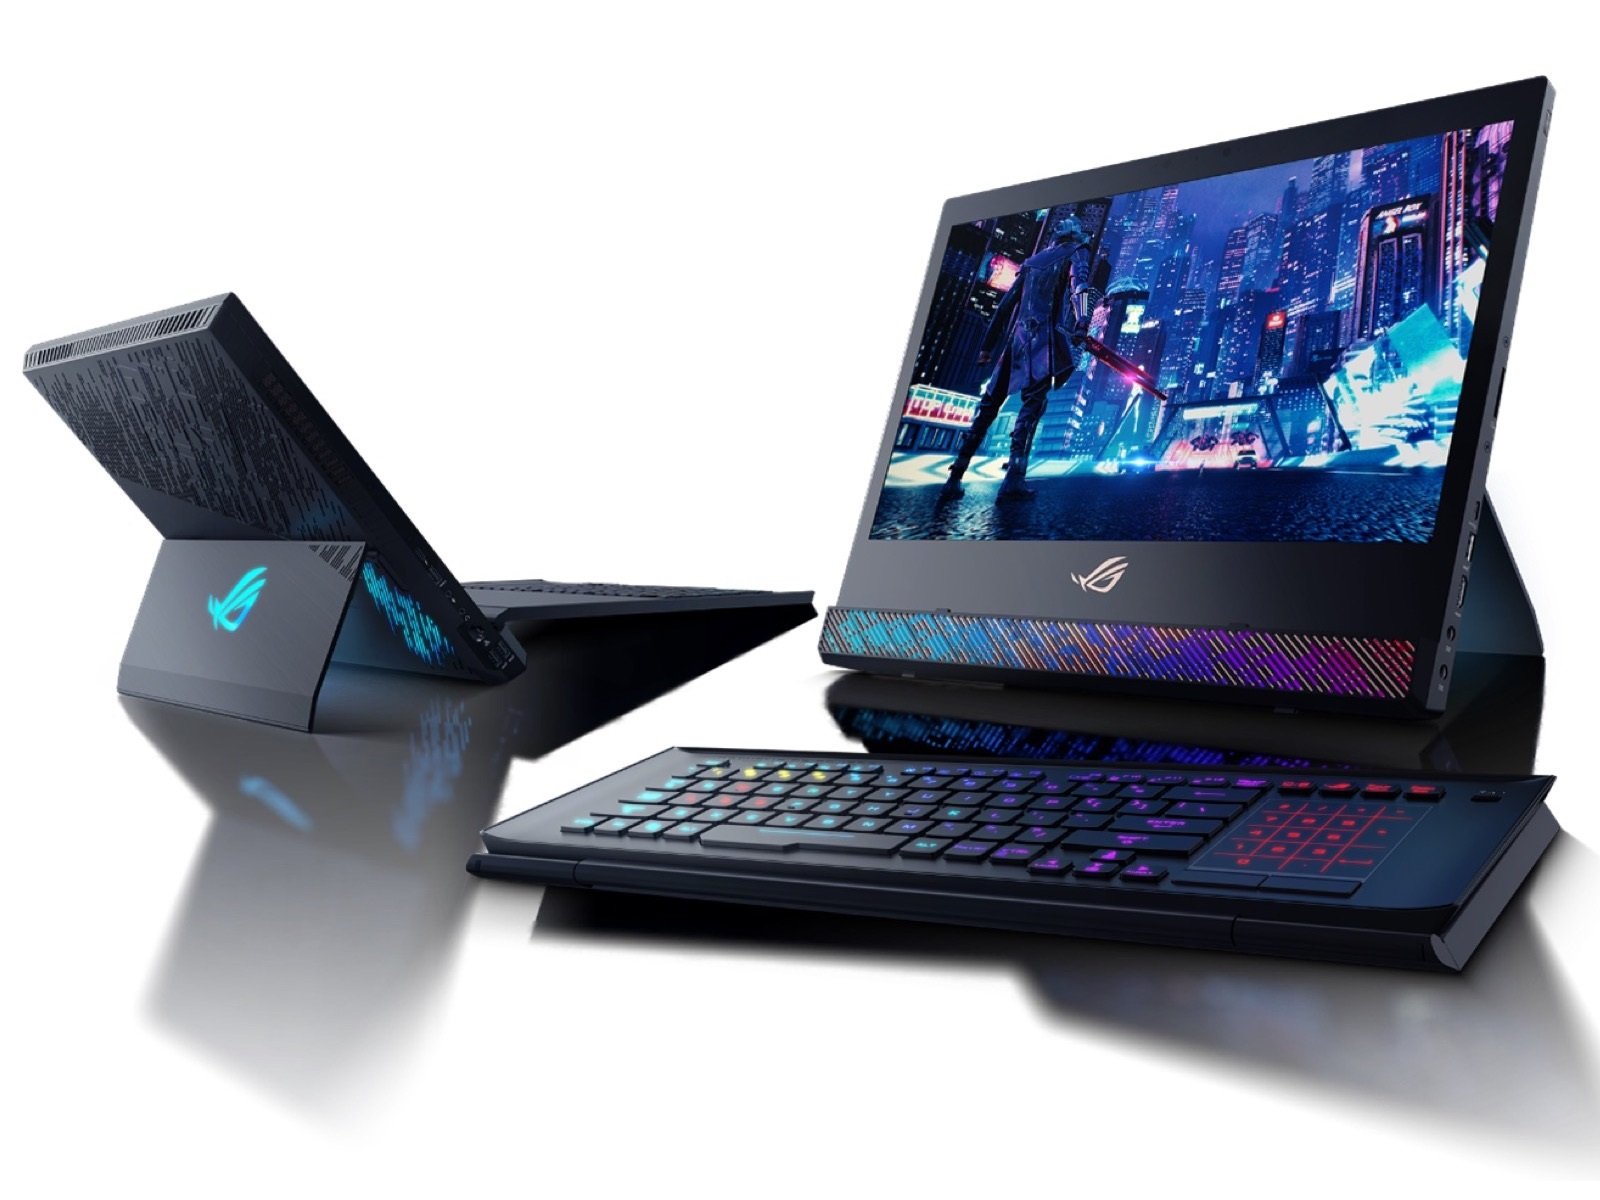 Asus Rog Mothership Gz700gx Laptop Review Out Of This World